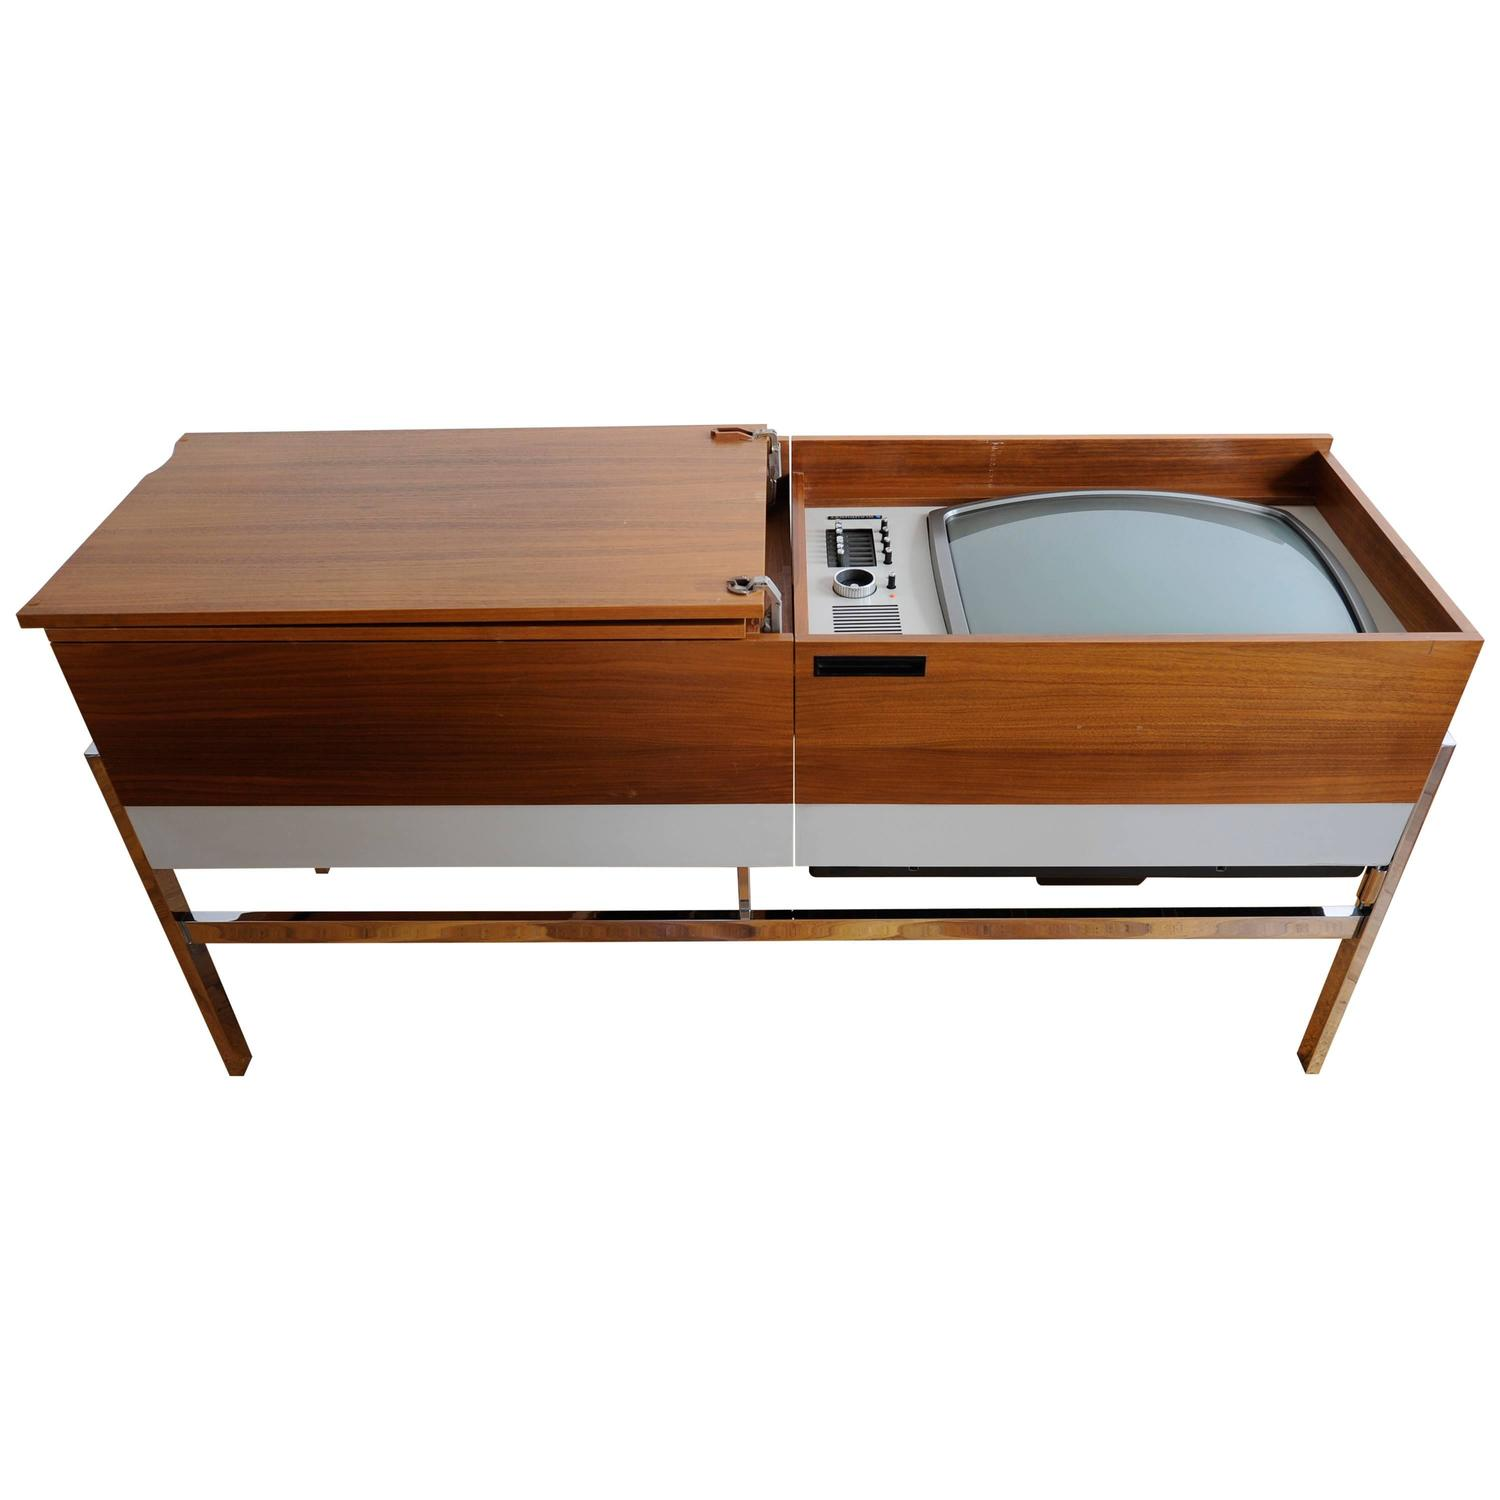 Blaupunkt Colorado Sideboard Hidden Tube Tv Radio Pe Record Player Turn Table For Sale At 1stdibs